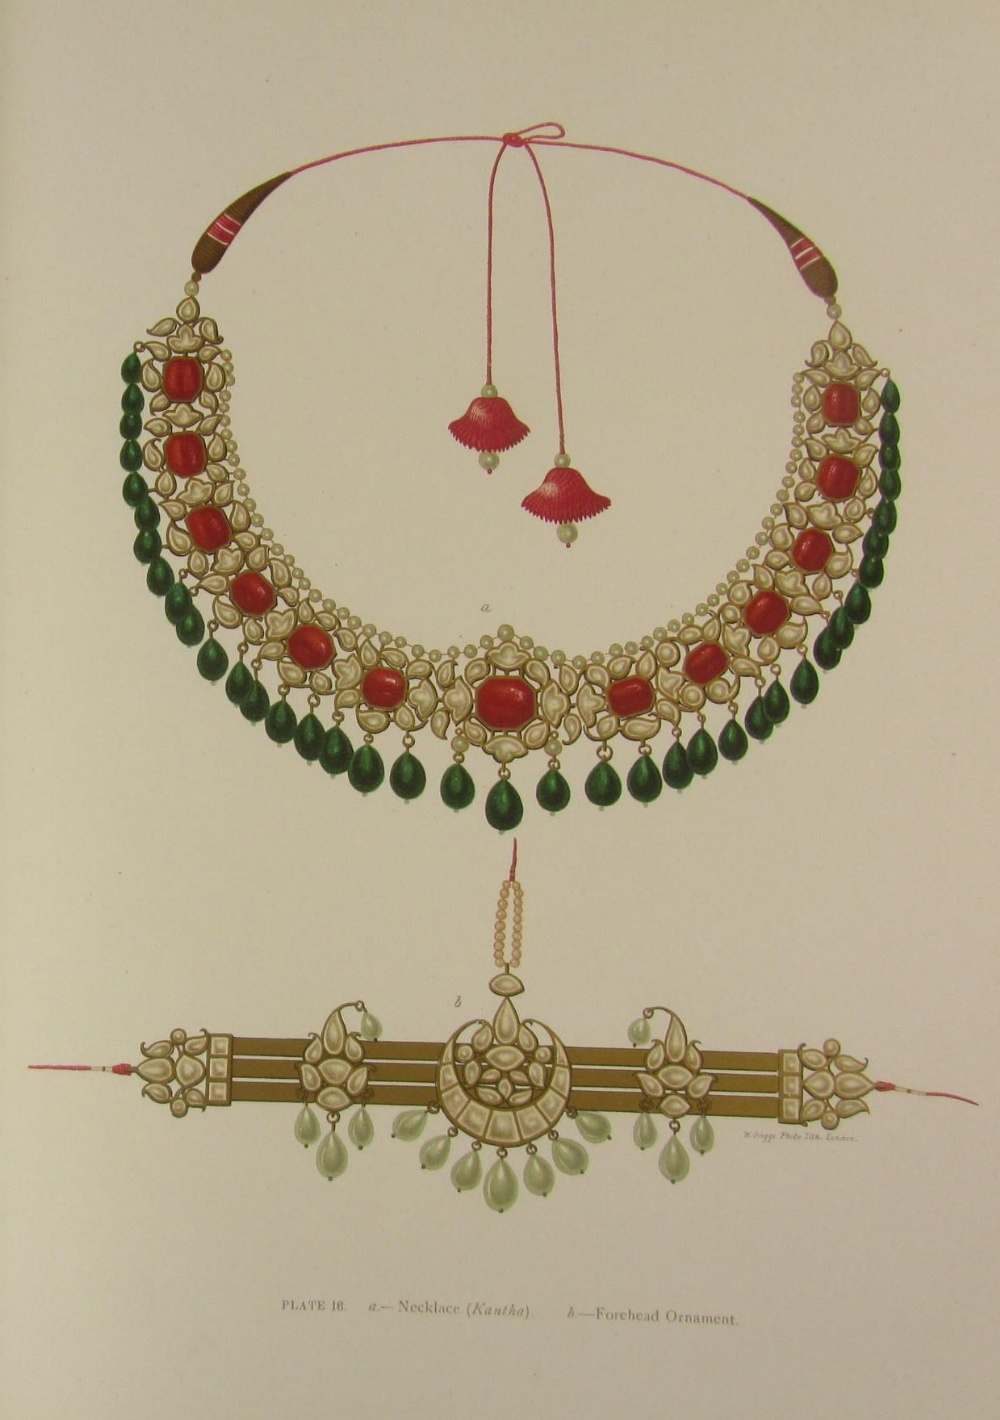 Necklace and forehead ornament. Plate 16.